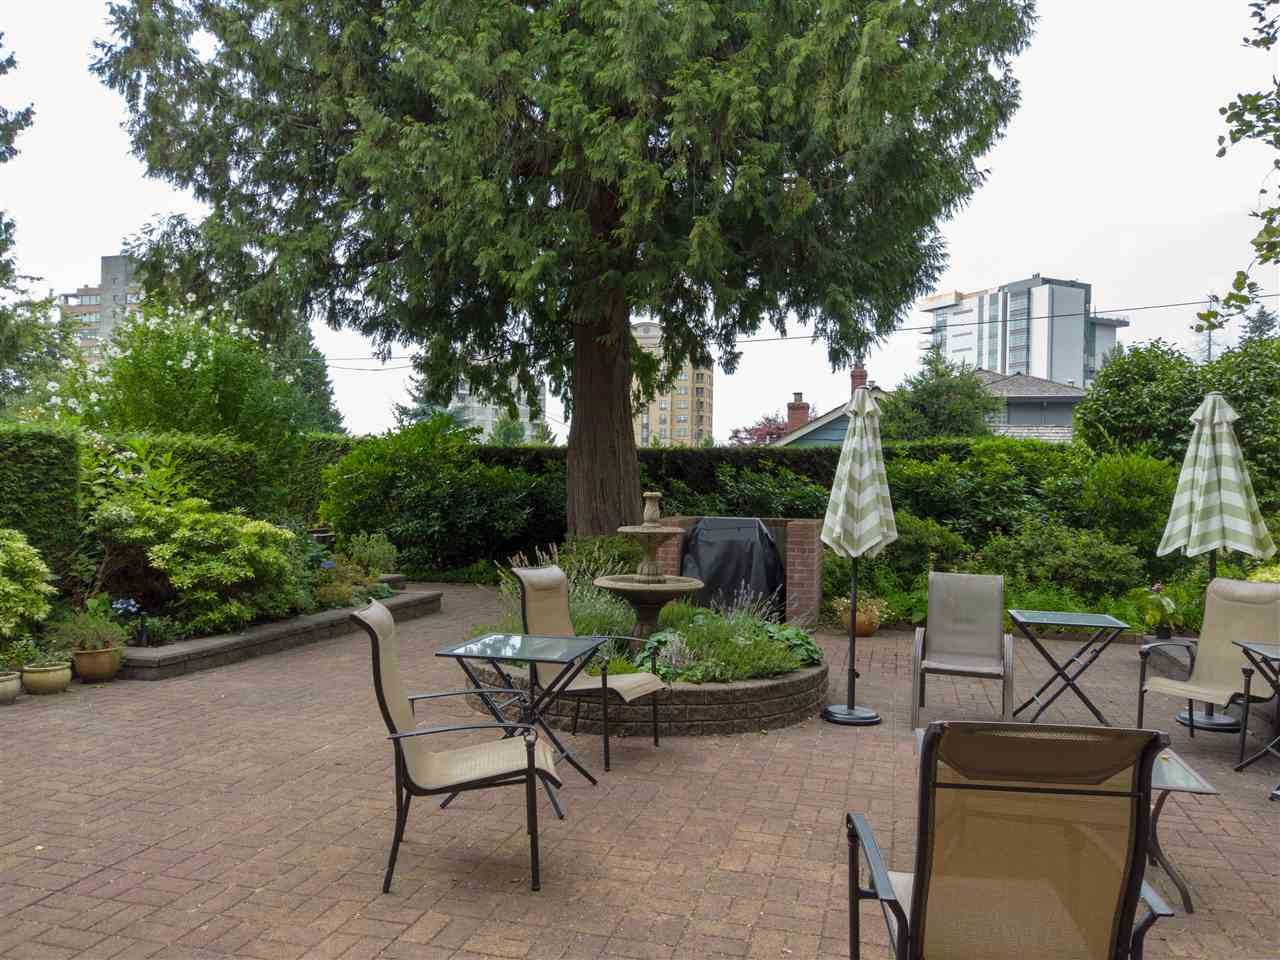 207 843 22ND STREET - Dundarave Apartment/Condo for sale, 1 Bedroom (R2497101) - #10